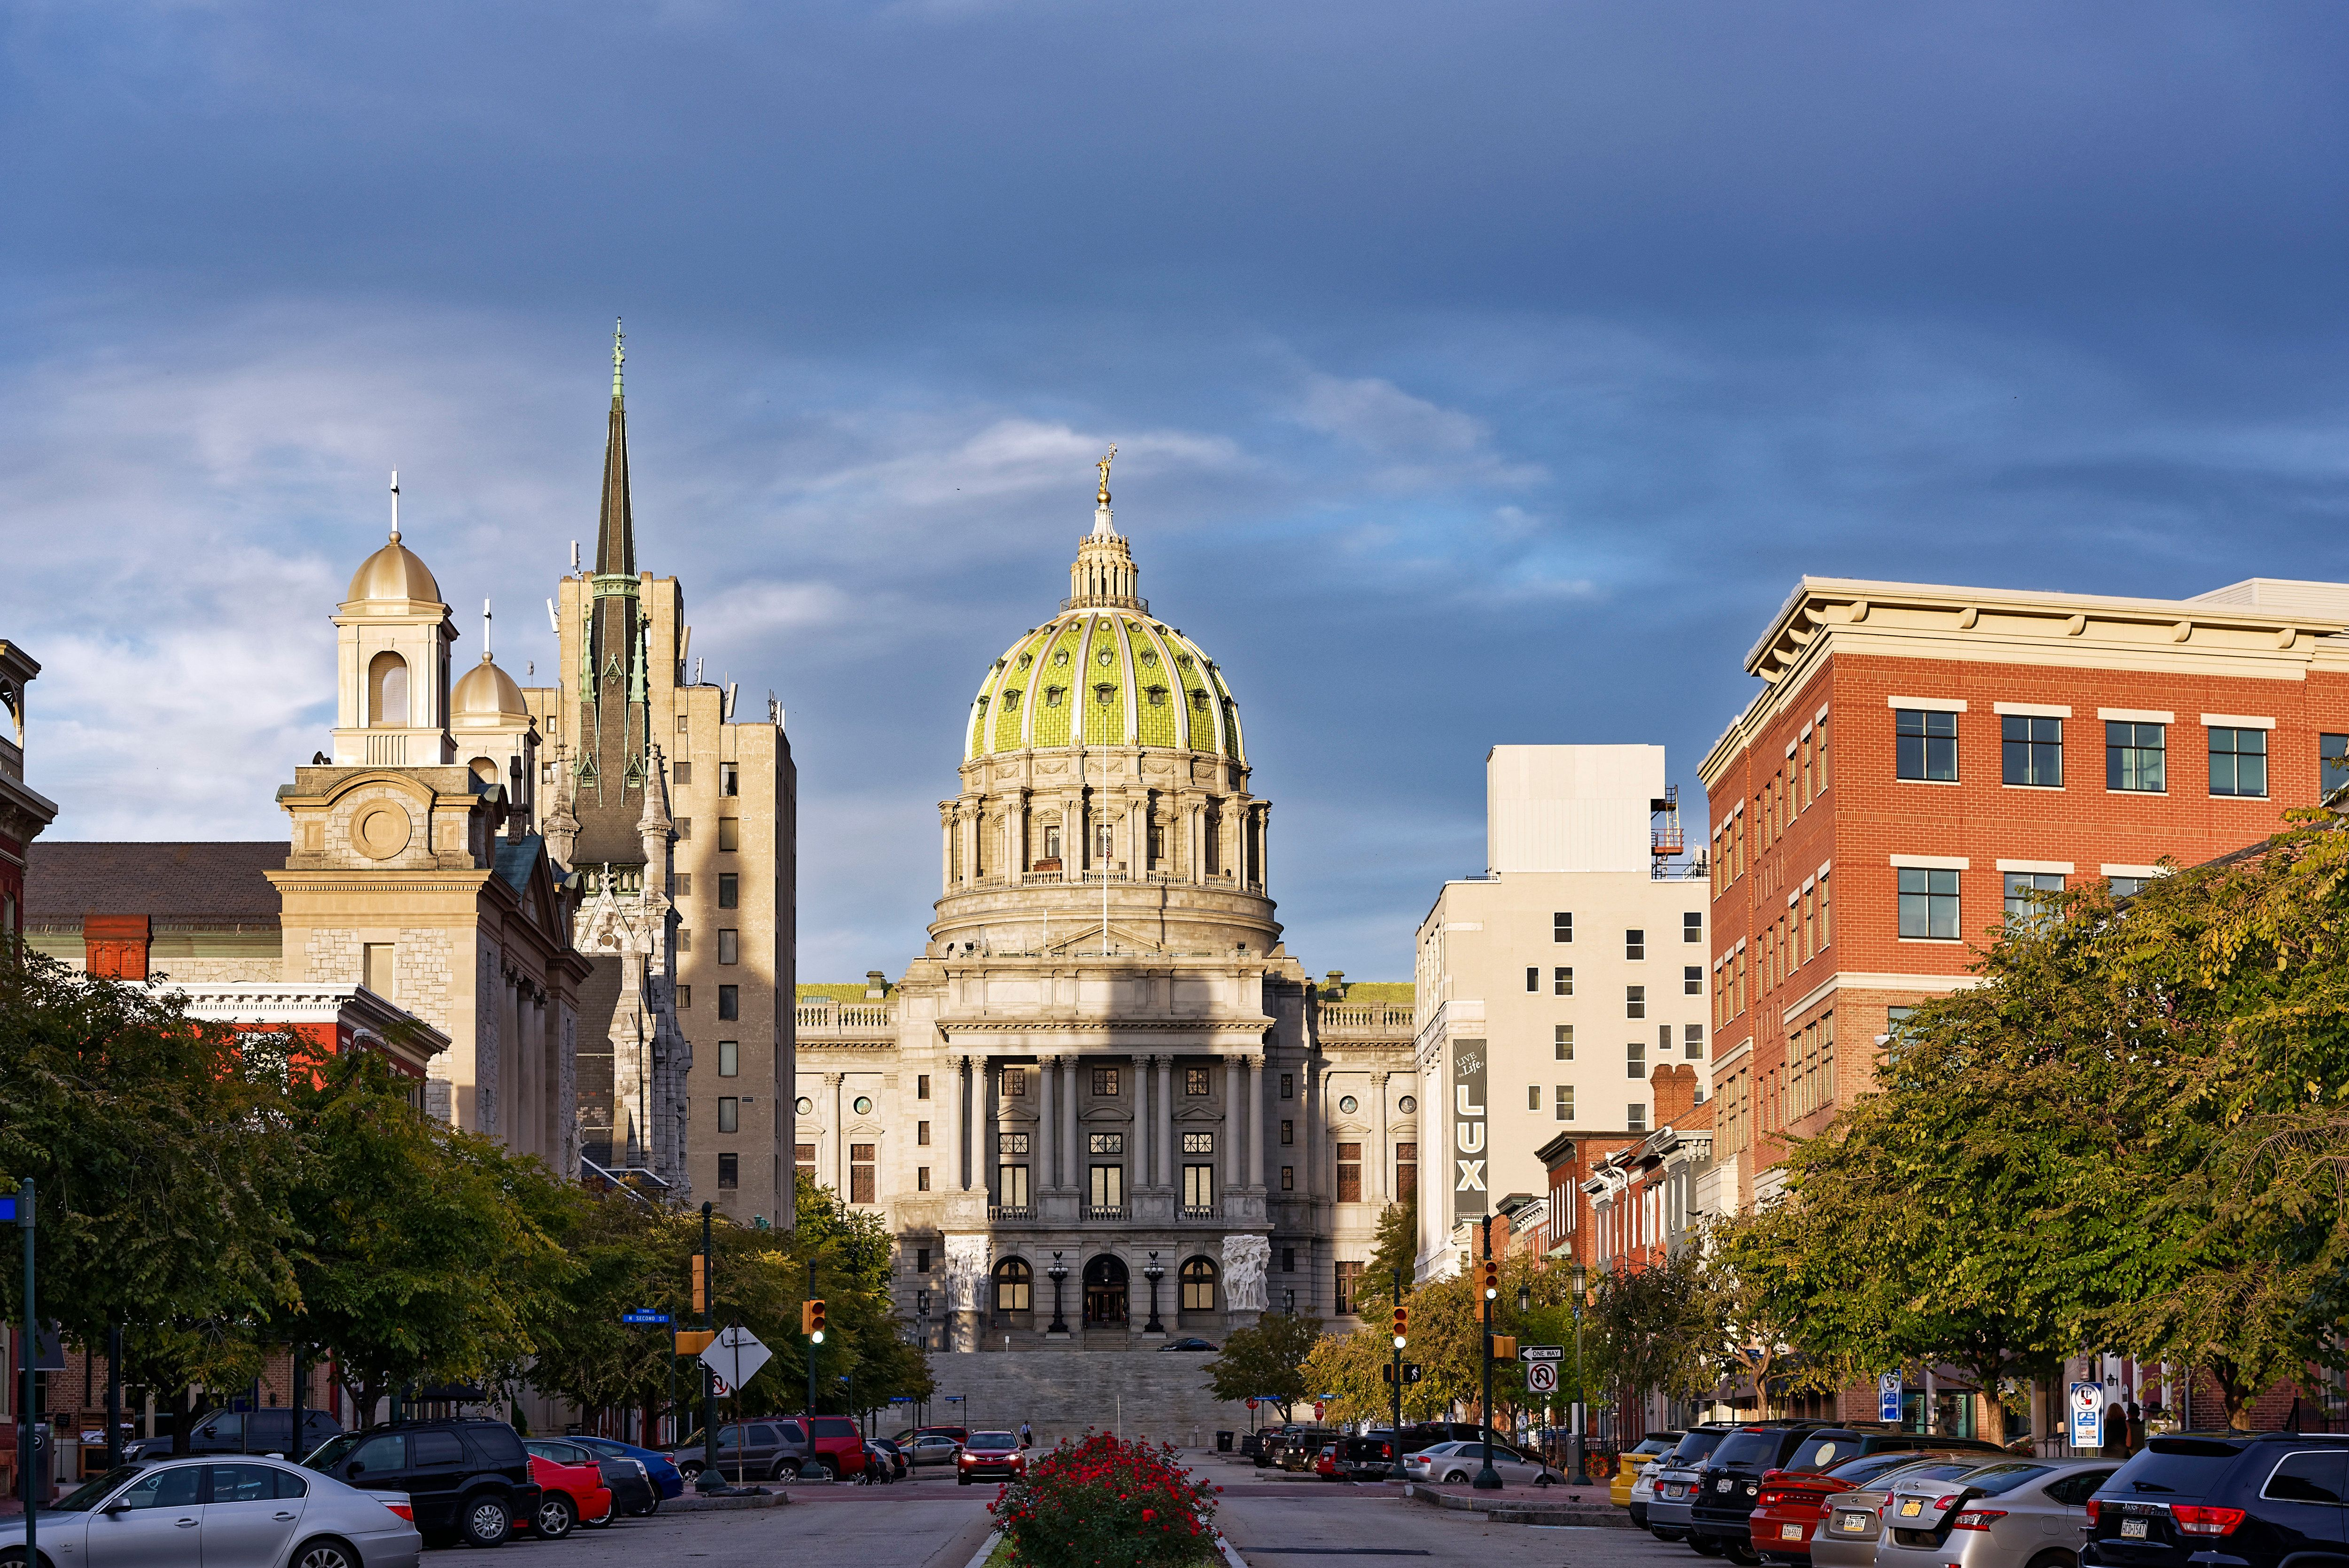 HARRISBURG, PENNSYLVANIA, UNITED STATES - 2015/10/06: Pennsylvania State capitol building. (Photo by John Greim/LightRocket via Getty Images)